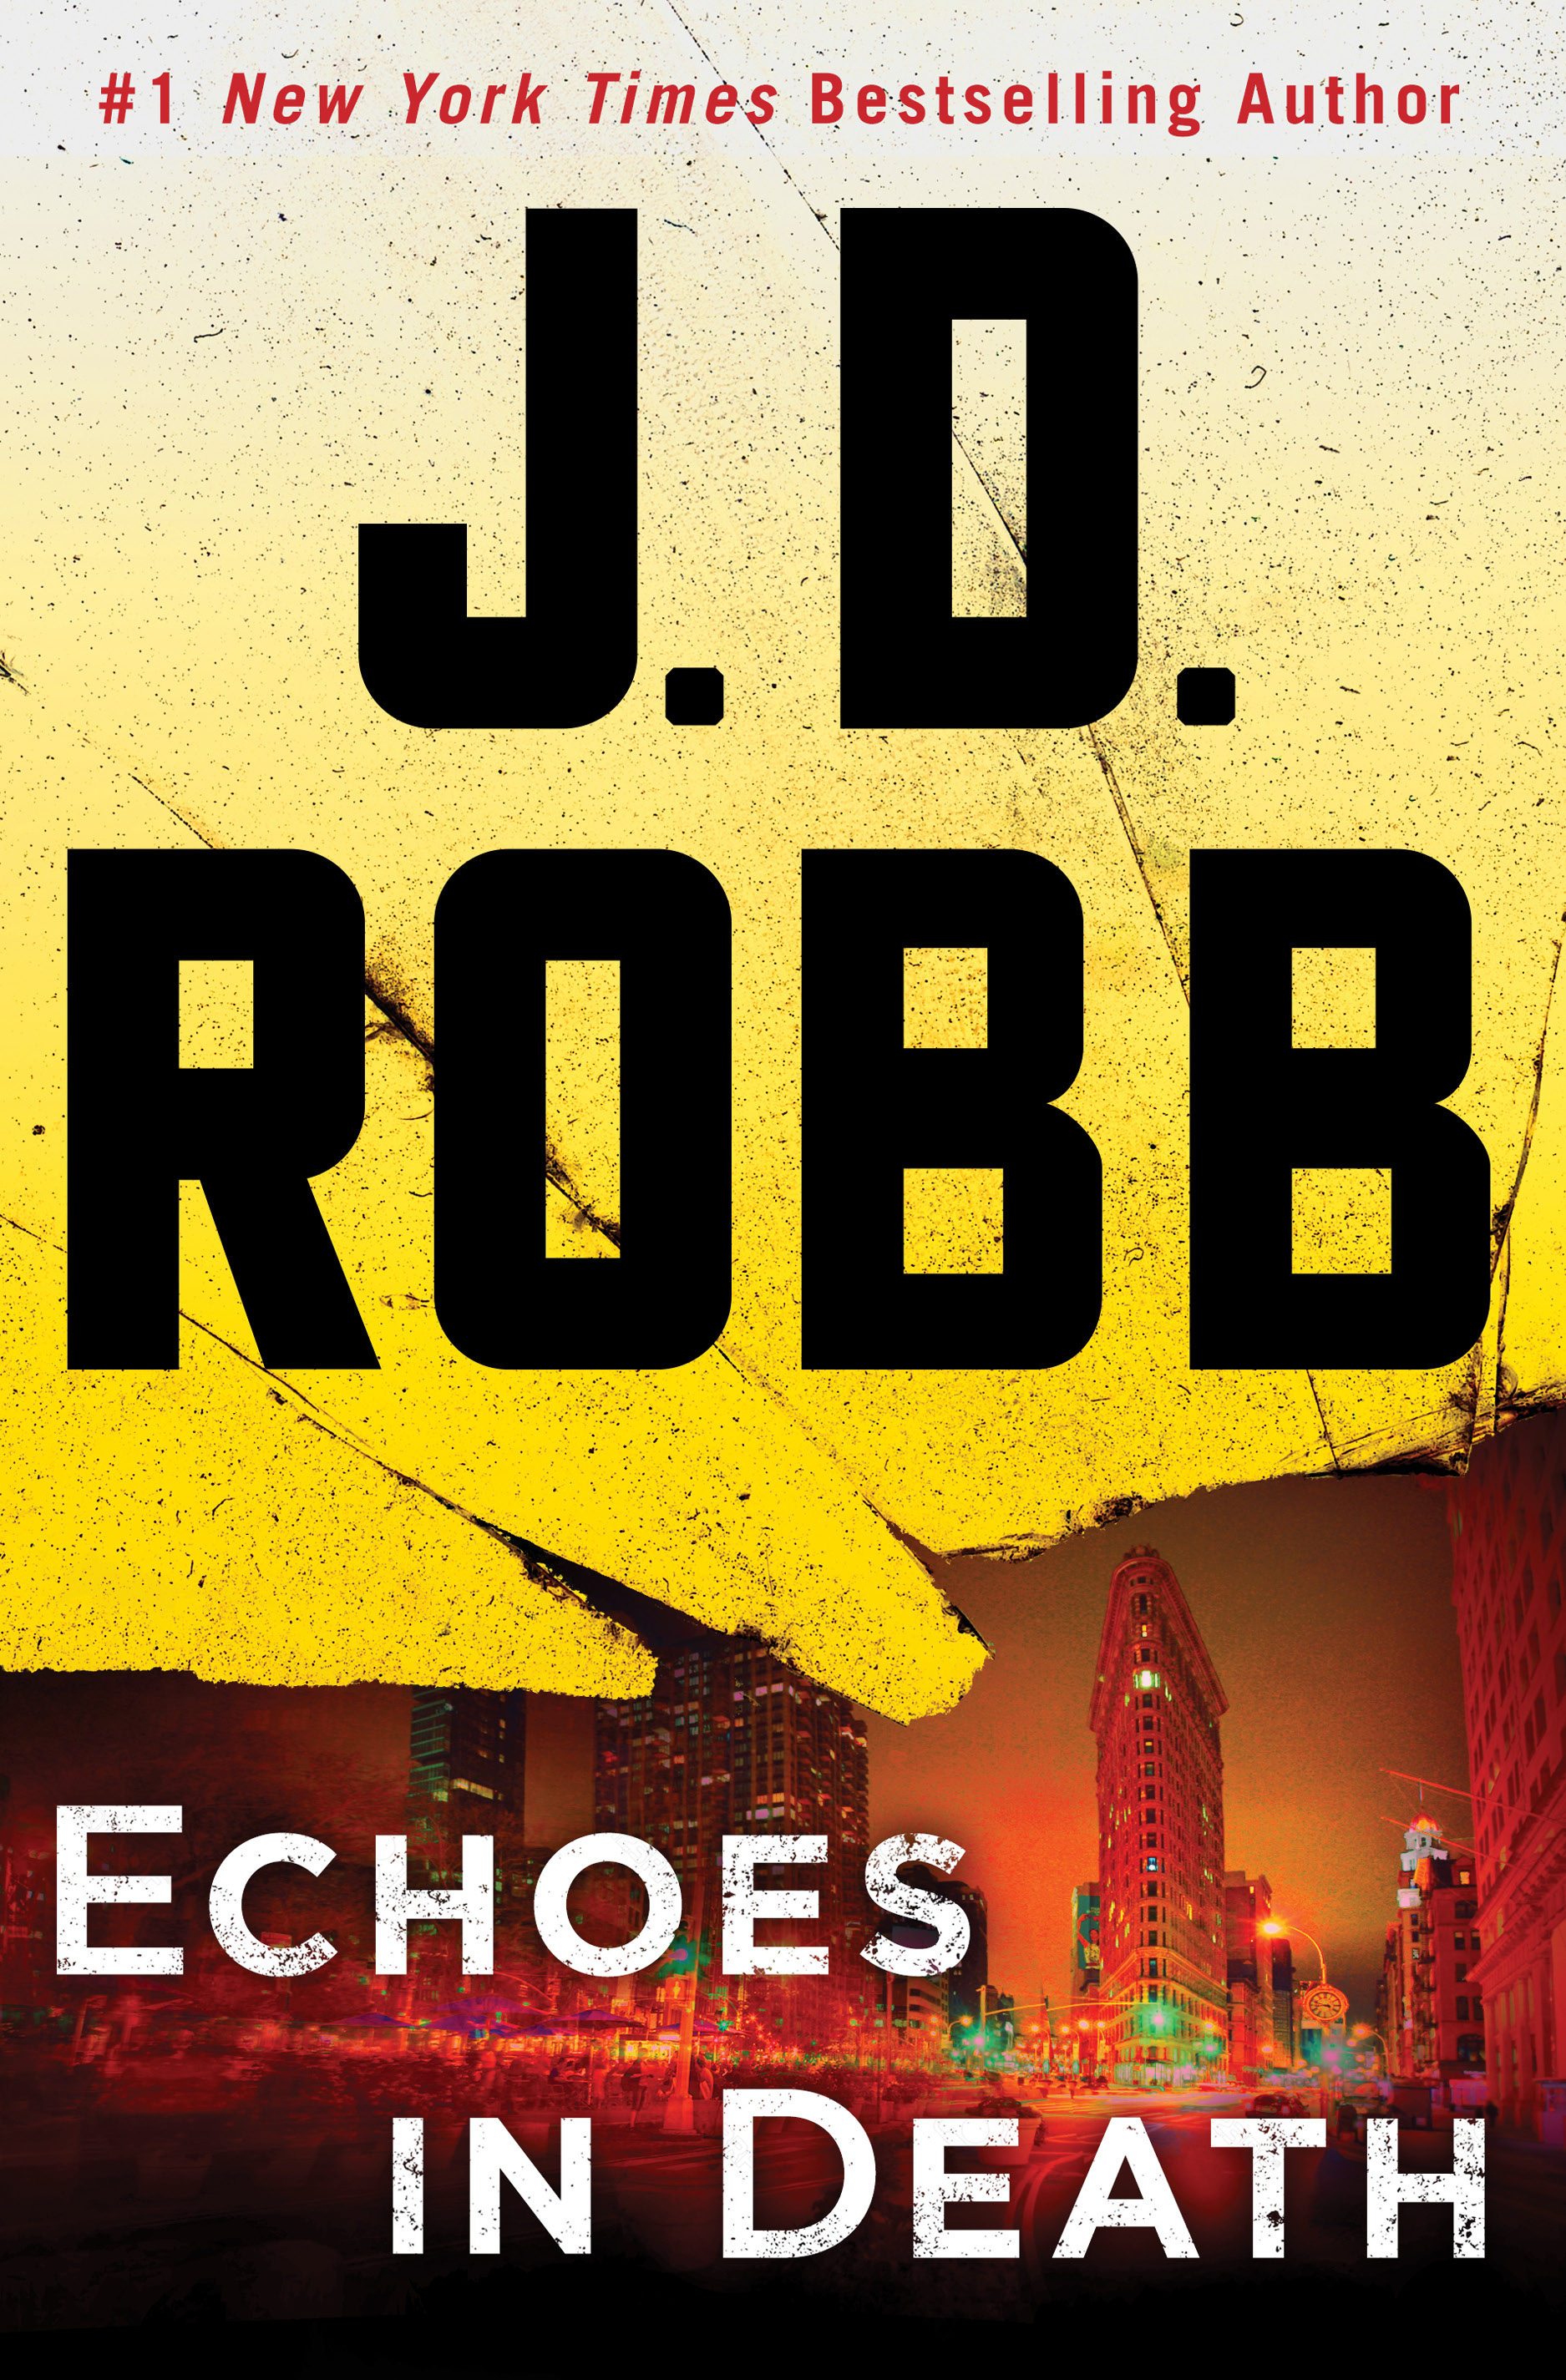 Echoes in Death An Eve Dallas Novel